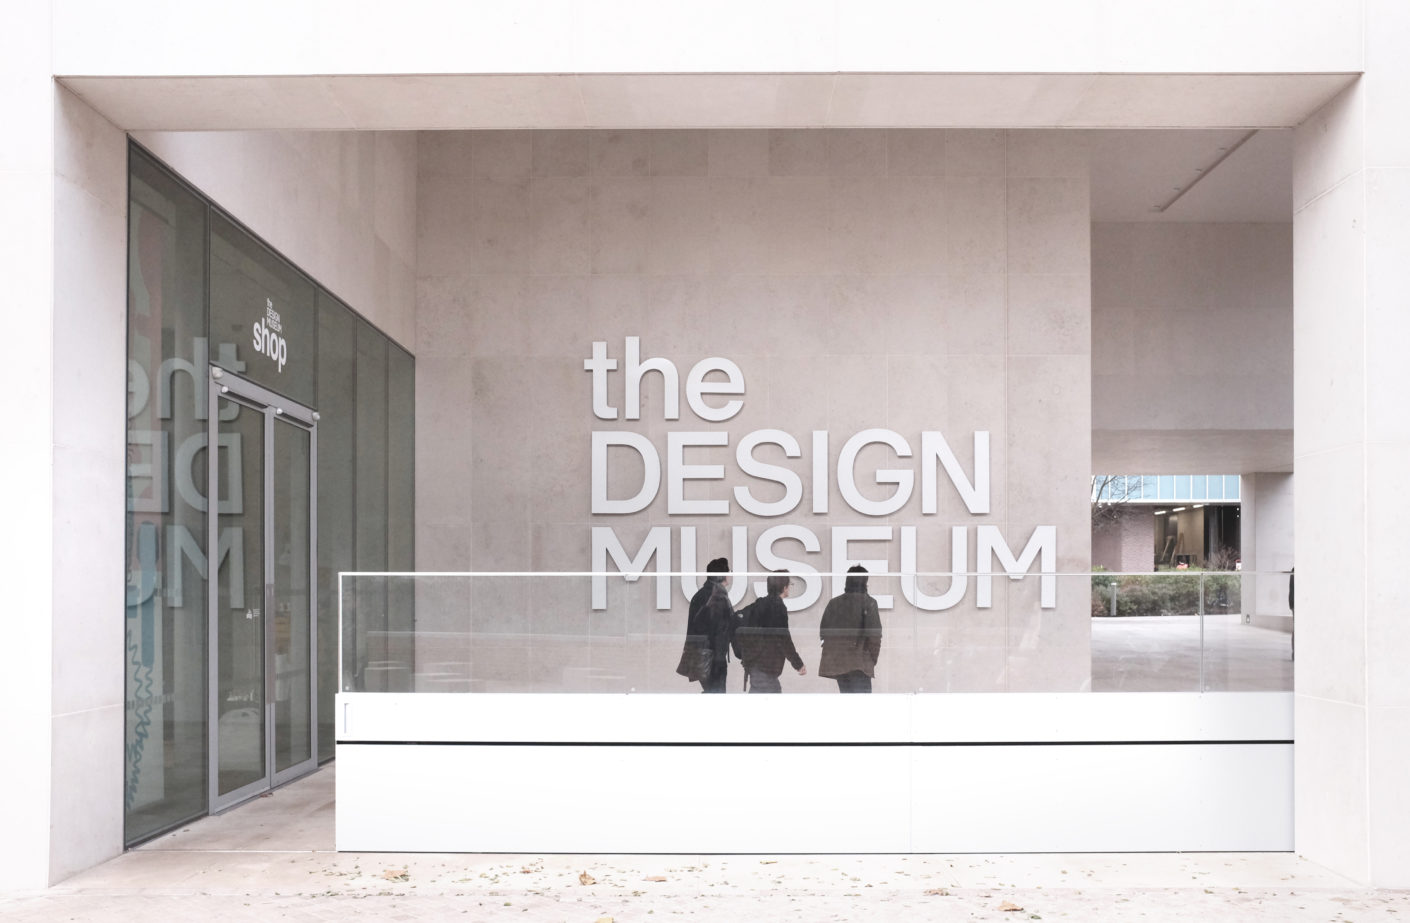 Design Museum London, Entrance, designed by OMA and John Pawson